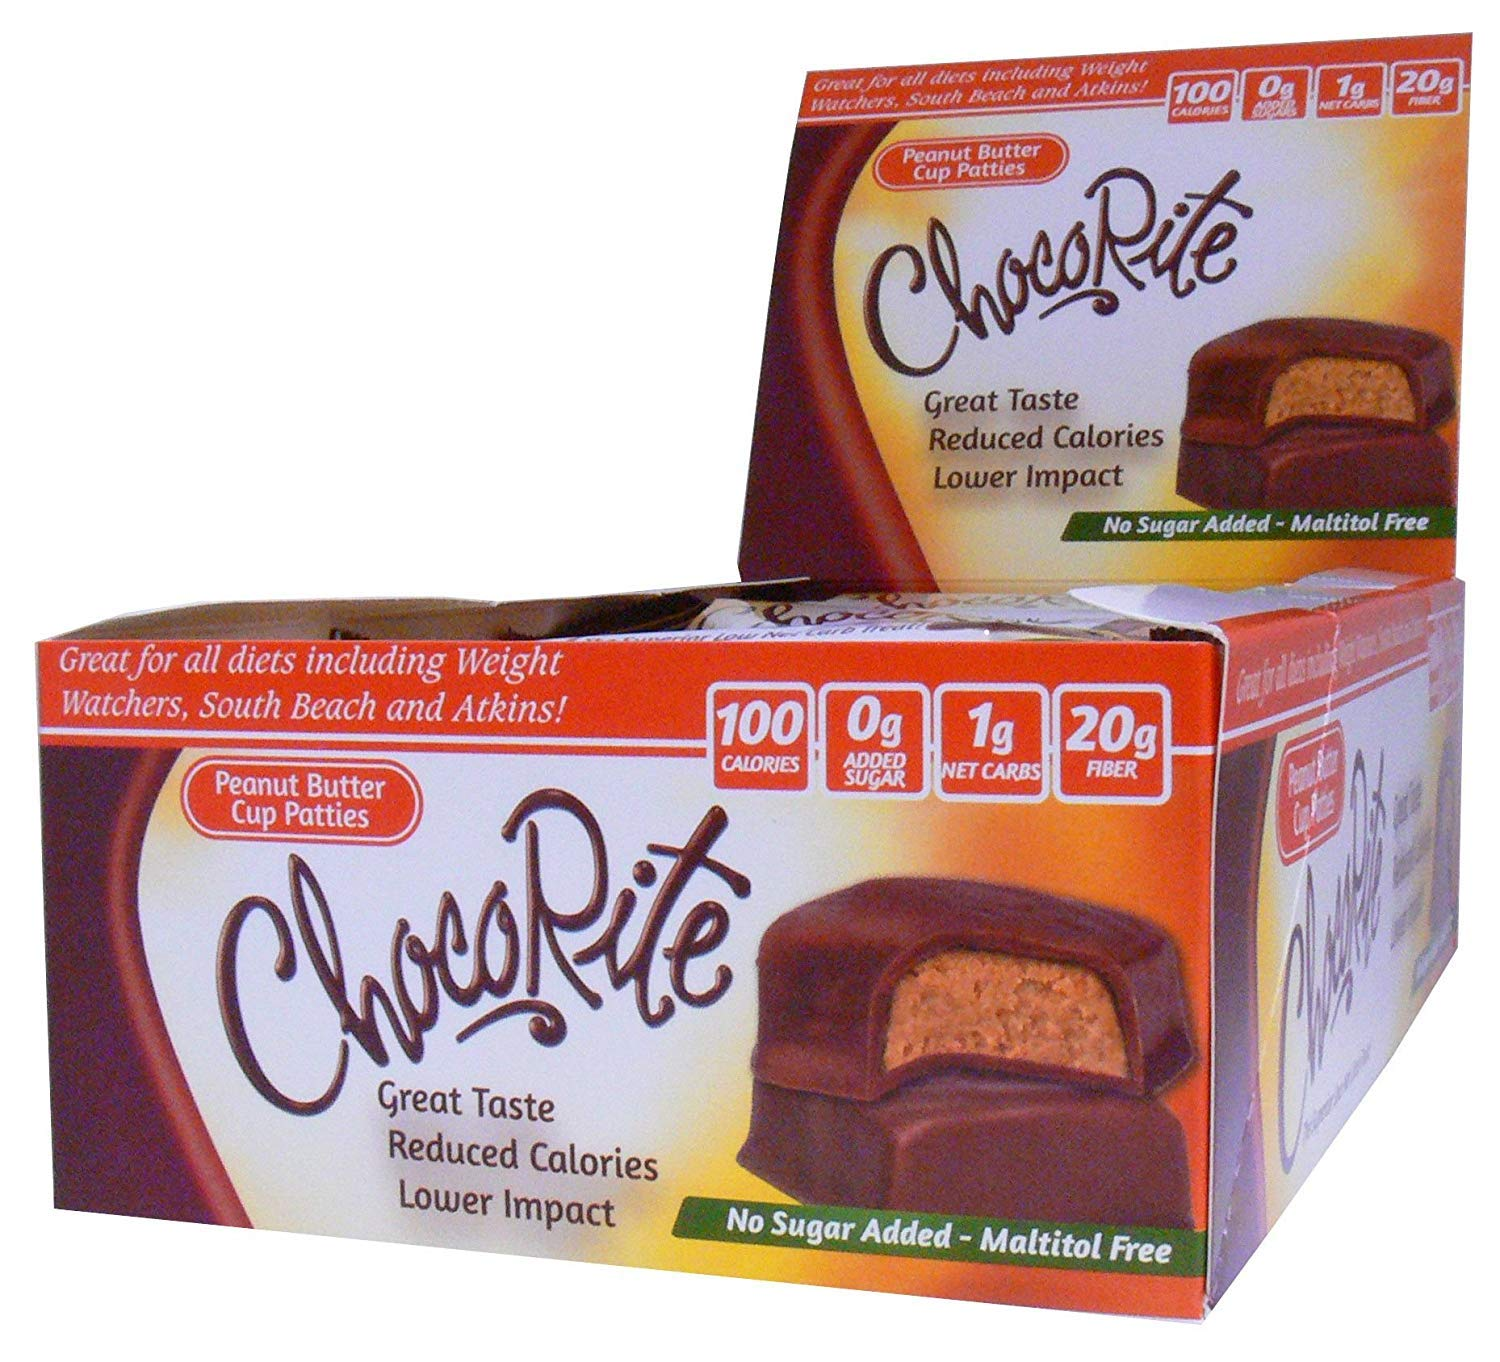 ChocoRite ChocoRite Peanut Butter Cup Patties, Peanut Butter Cup Patties, 18 Ounce , 16 count (4 Pack (16 Count)) by ChocoRite